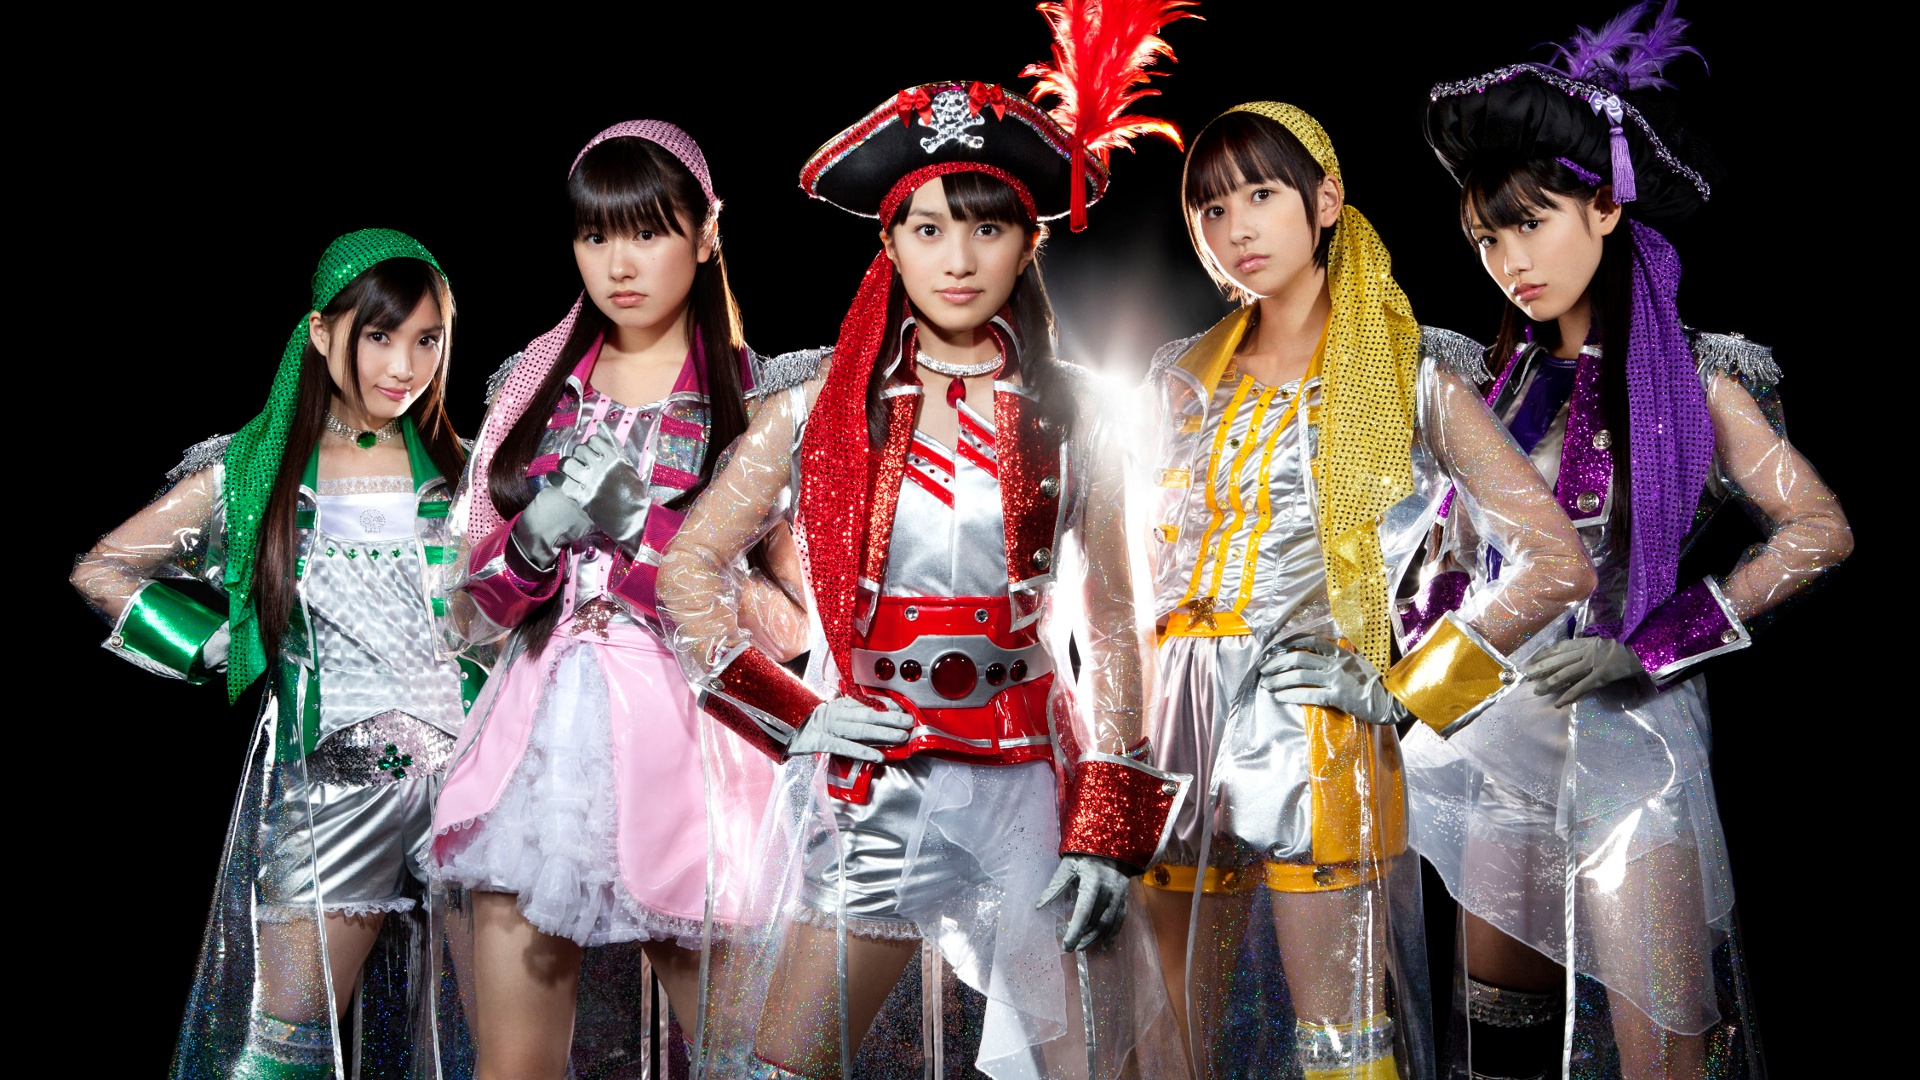 Momoiro Clover Z announce plans to tour the US